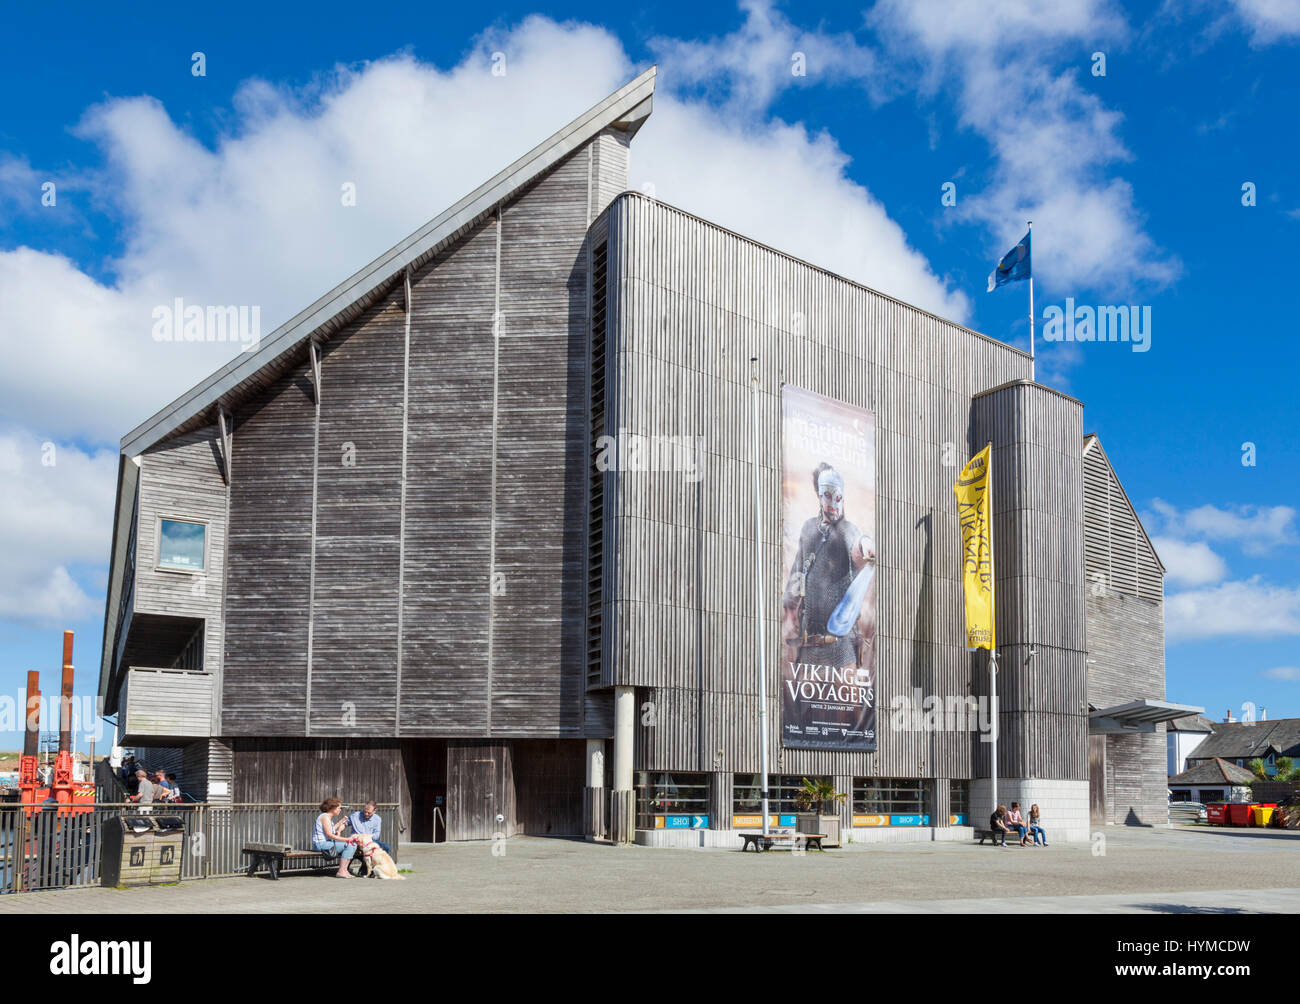 Colchester, National Maritime Museum Cornwall, Discovery Quay, Falmouth Cornwall west country Inghilterra gb uk Immagini Stock